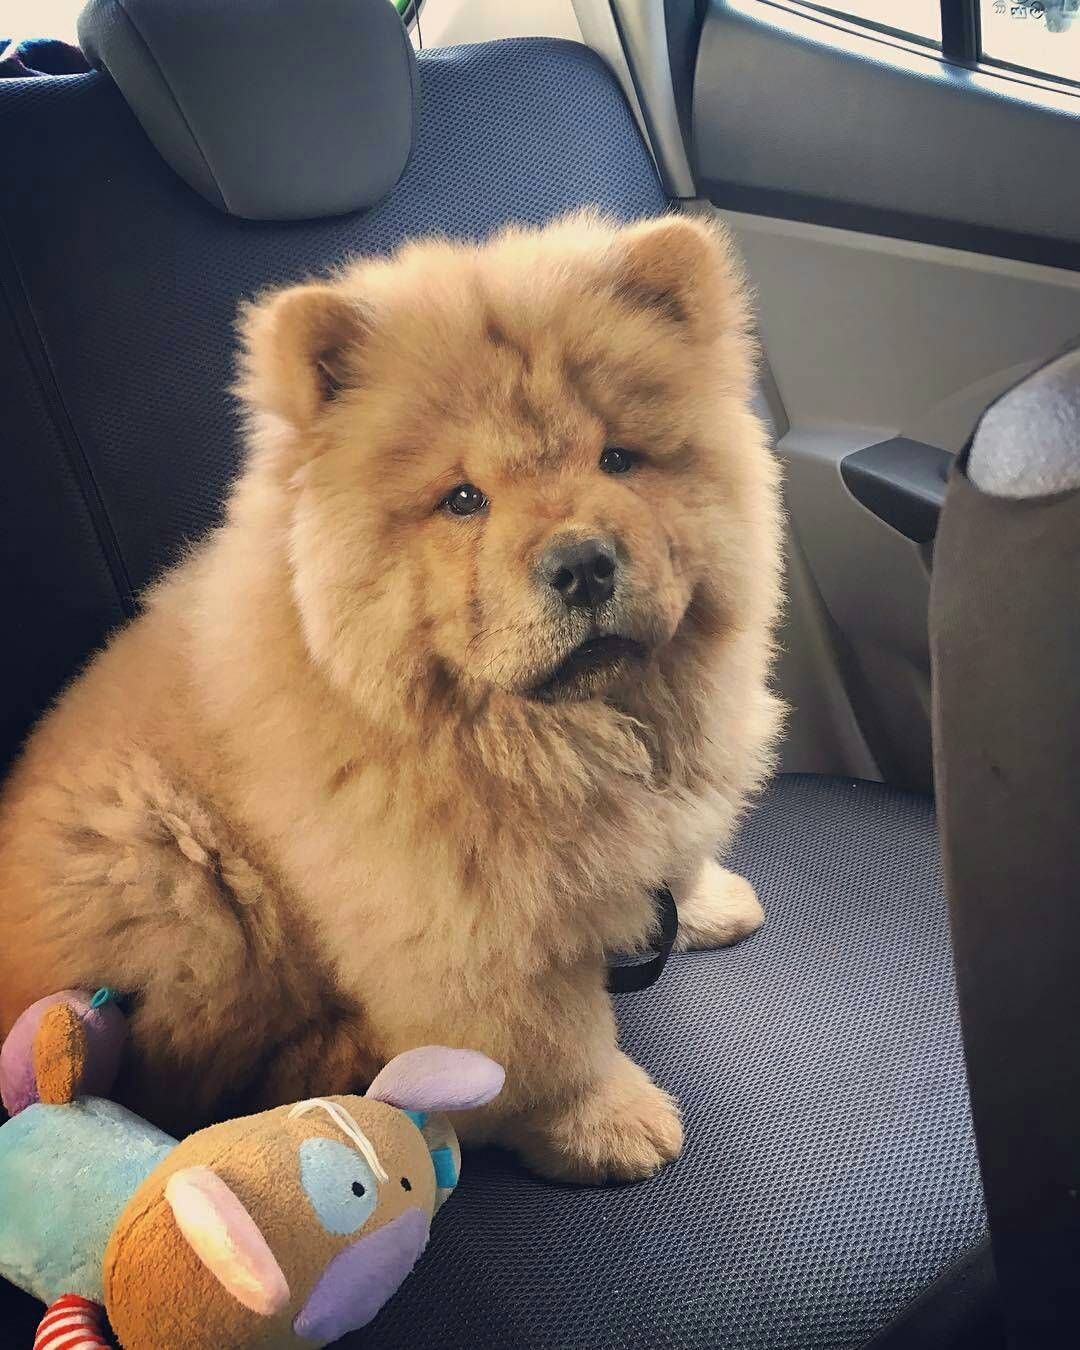 7 994 Likes 72 Comments Chowstagram Chow Chow Puppies